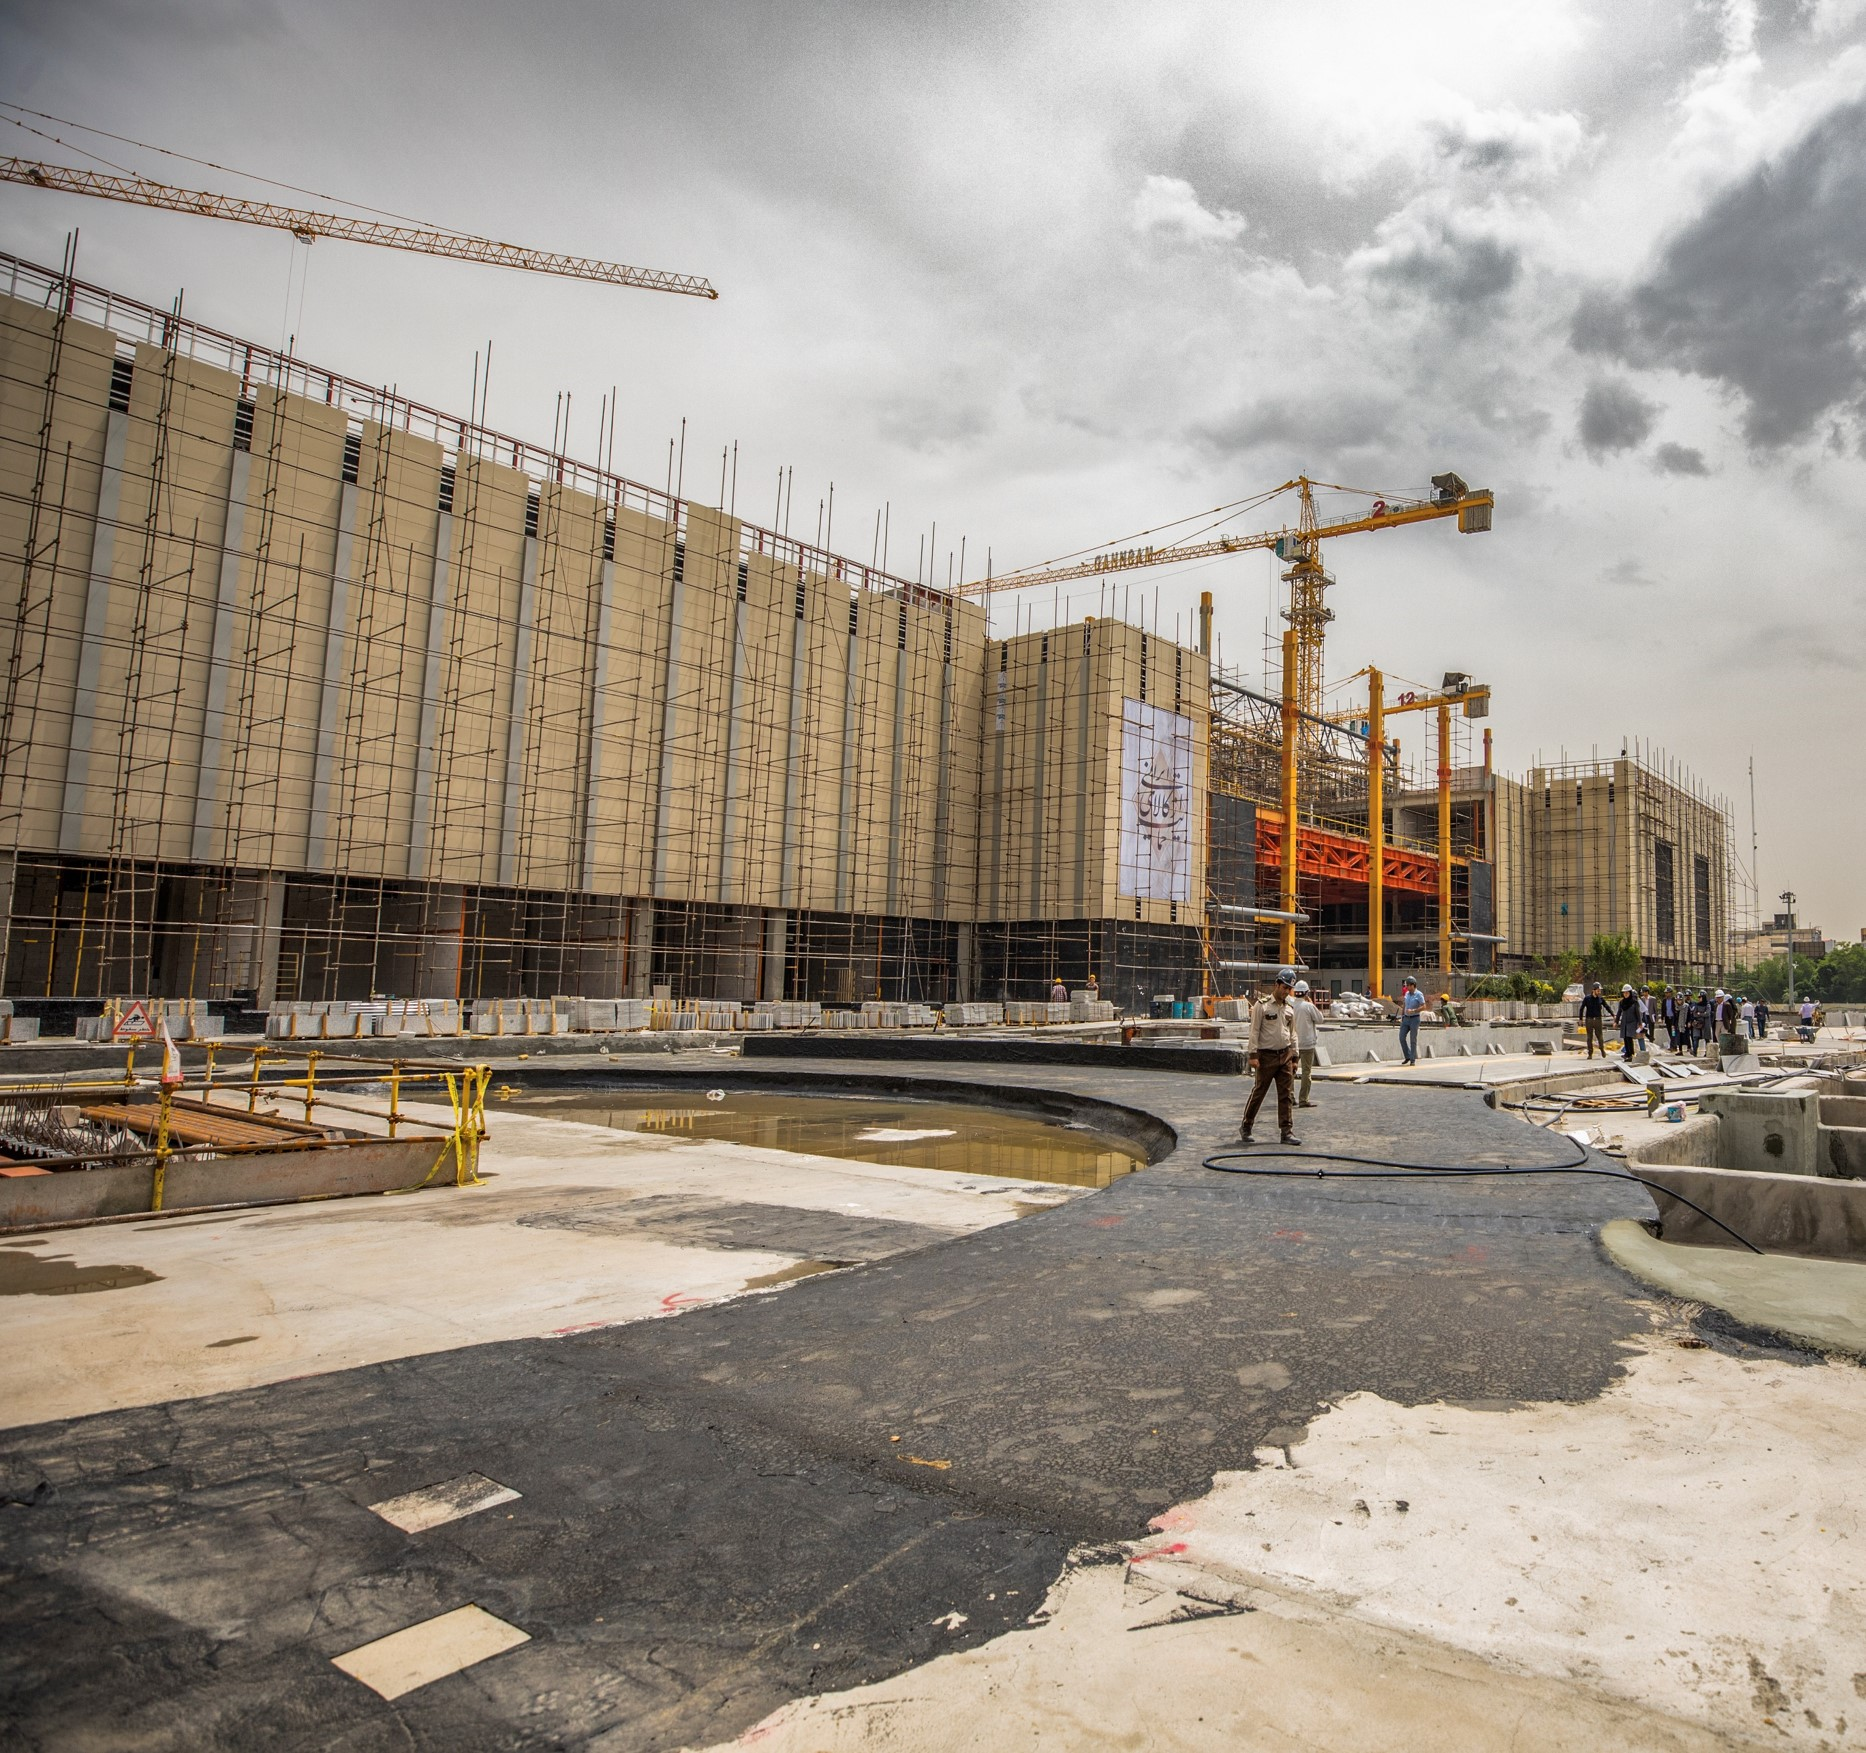 Systematica_Mashhad Mall_Under Construction